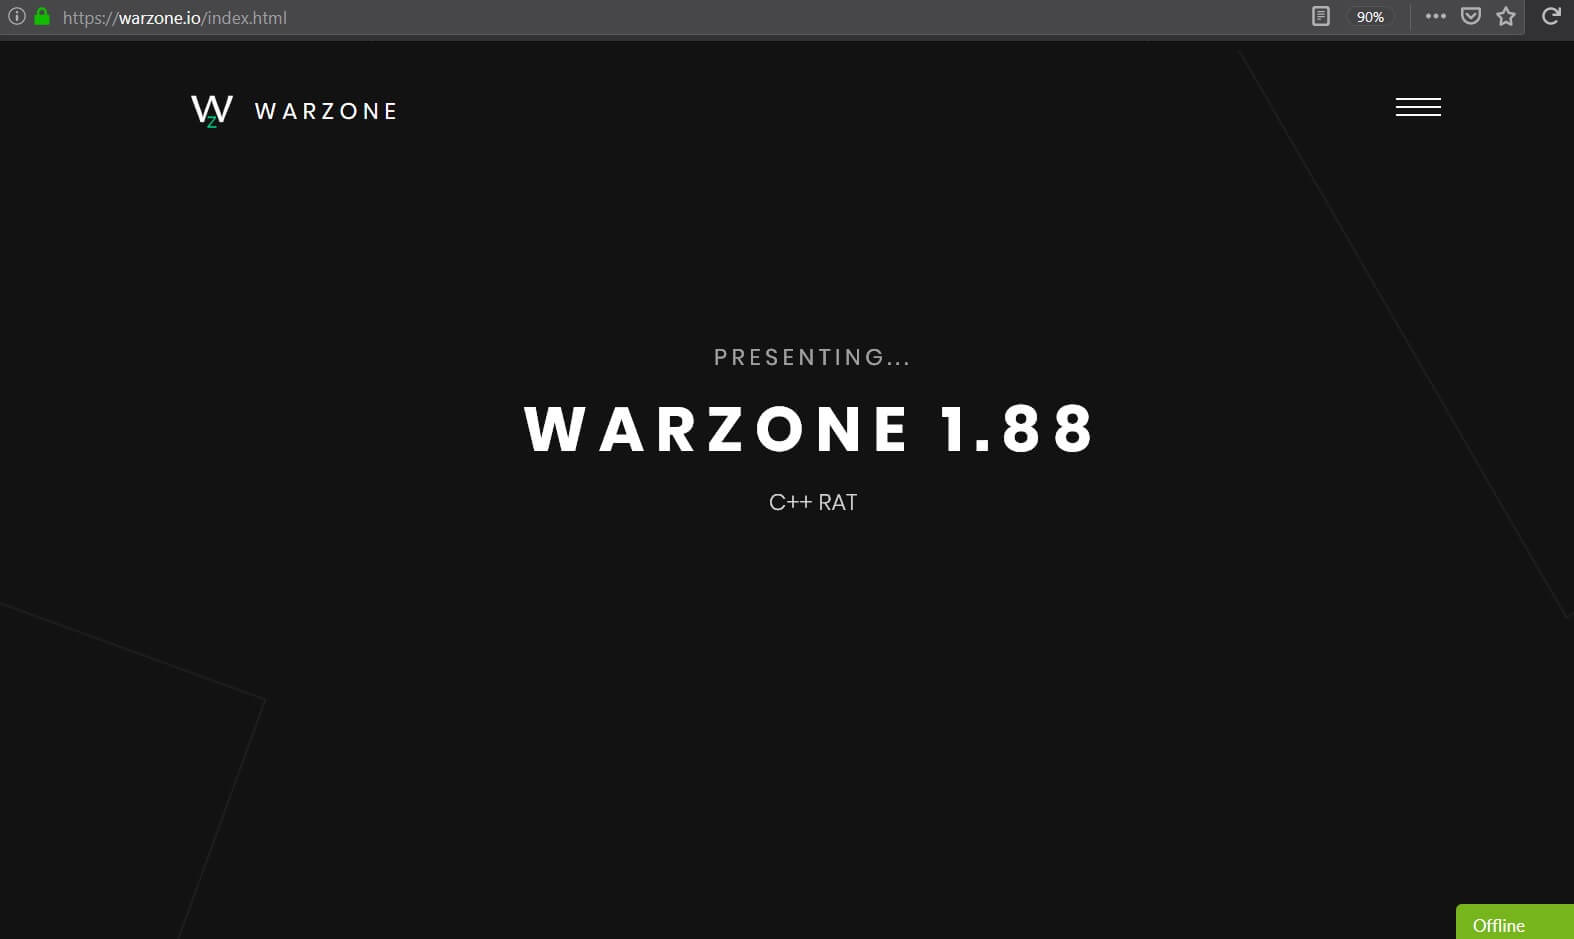 stf-warzone-rat-website